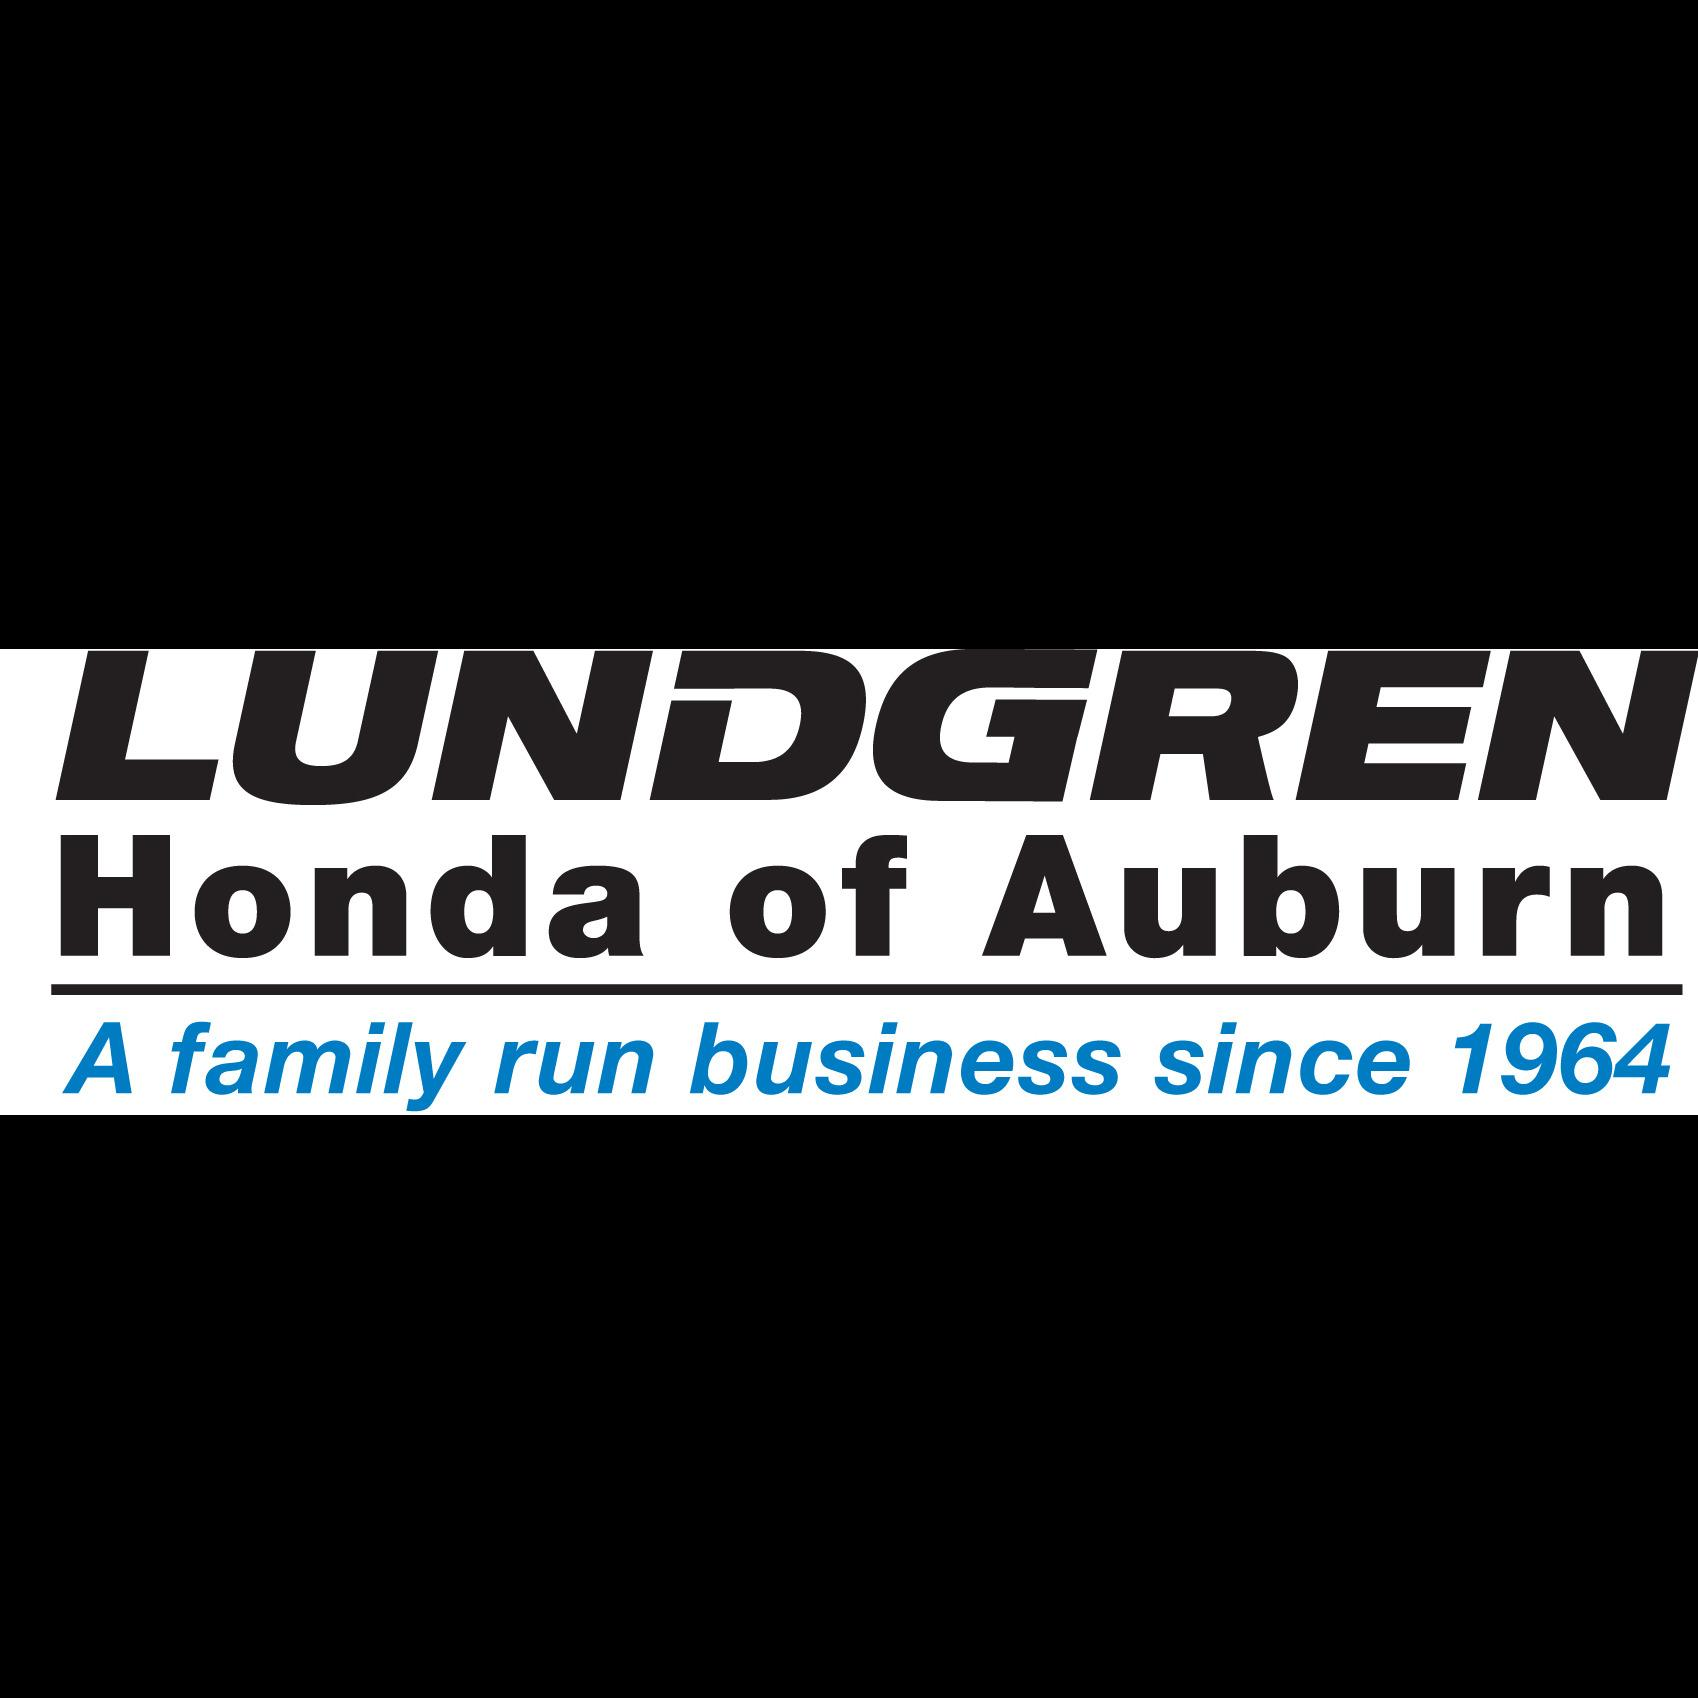 lundgren honda of auburn 6 photos auto dealers auburn ma reviews. Black Bedroom Furniture Sets. Home Design Ideas